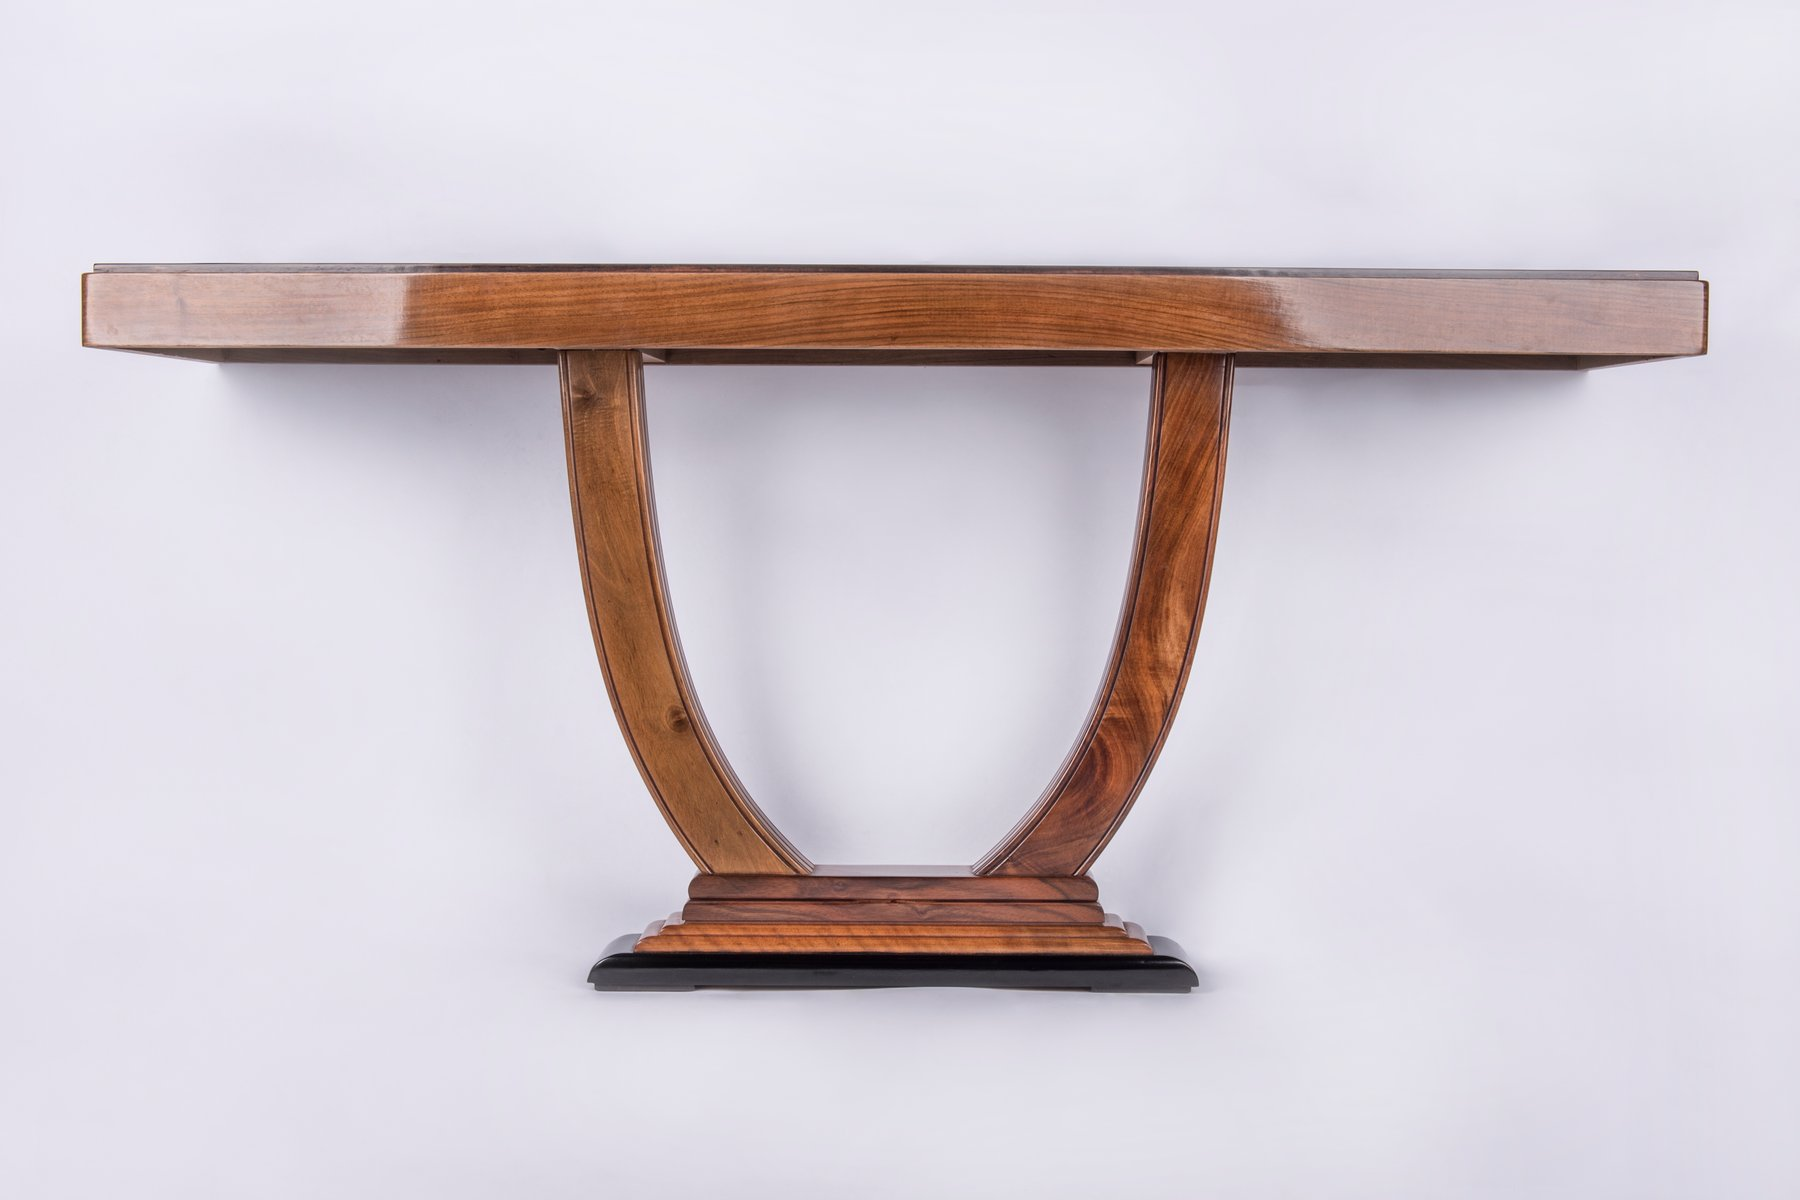 Art deco console table table designs art deco console table 1930s for at pamono geotapseo Image collections